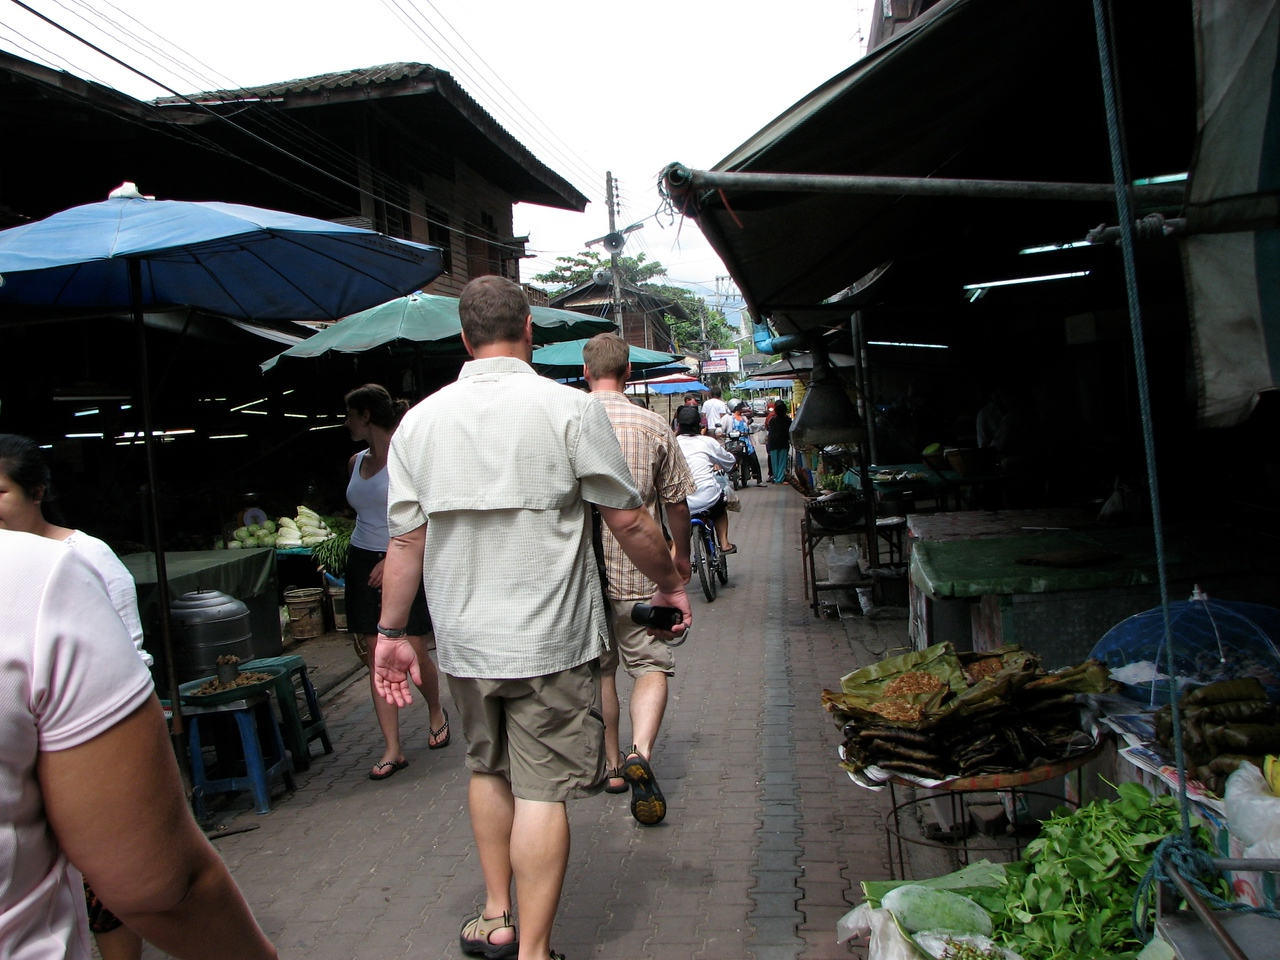 It's about 10AM when we arrive at the market and things are kind of slow.